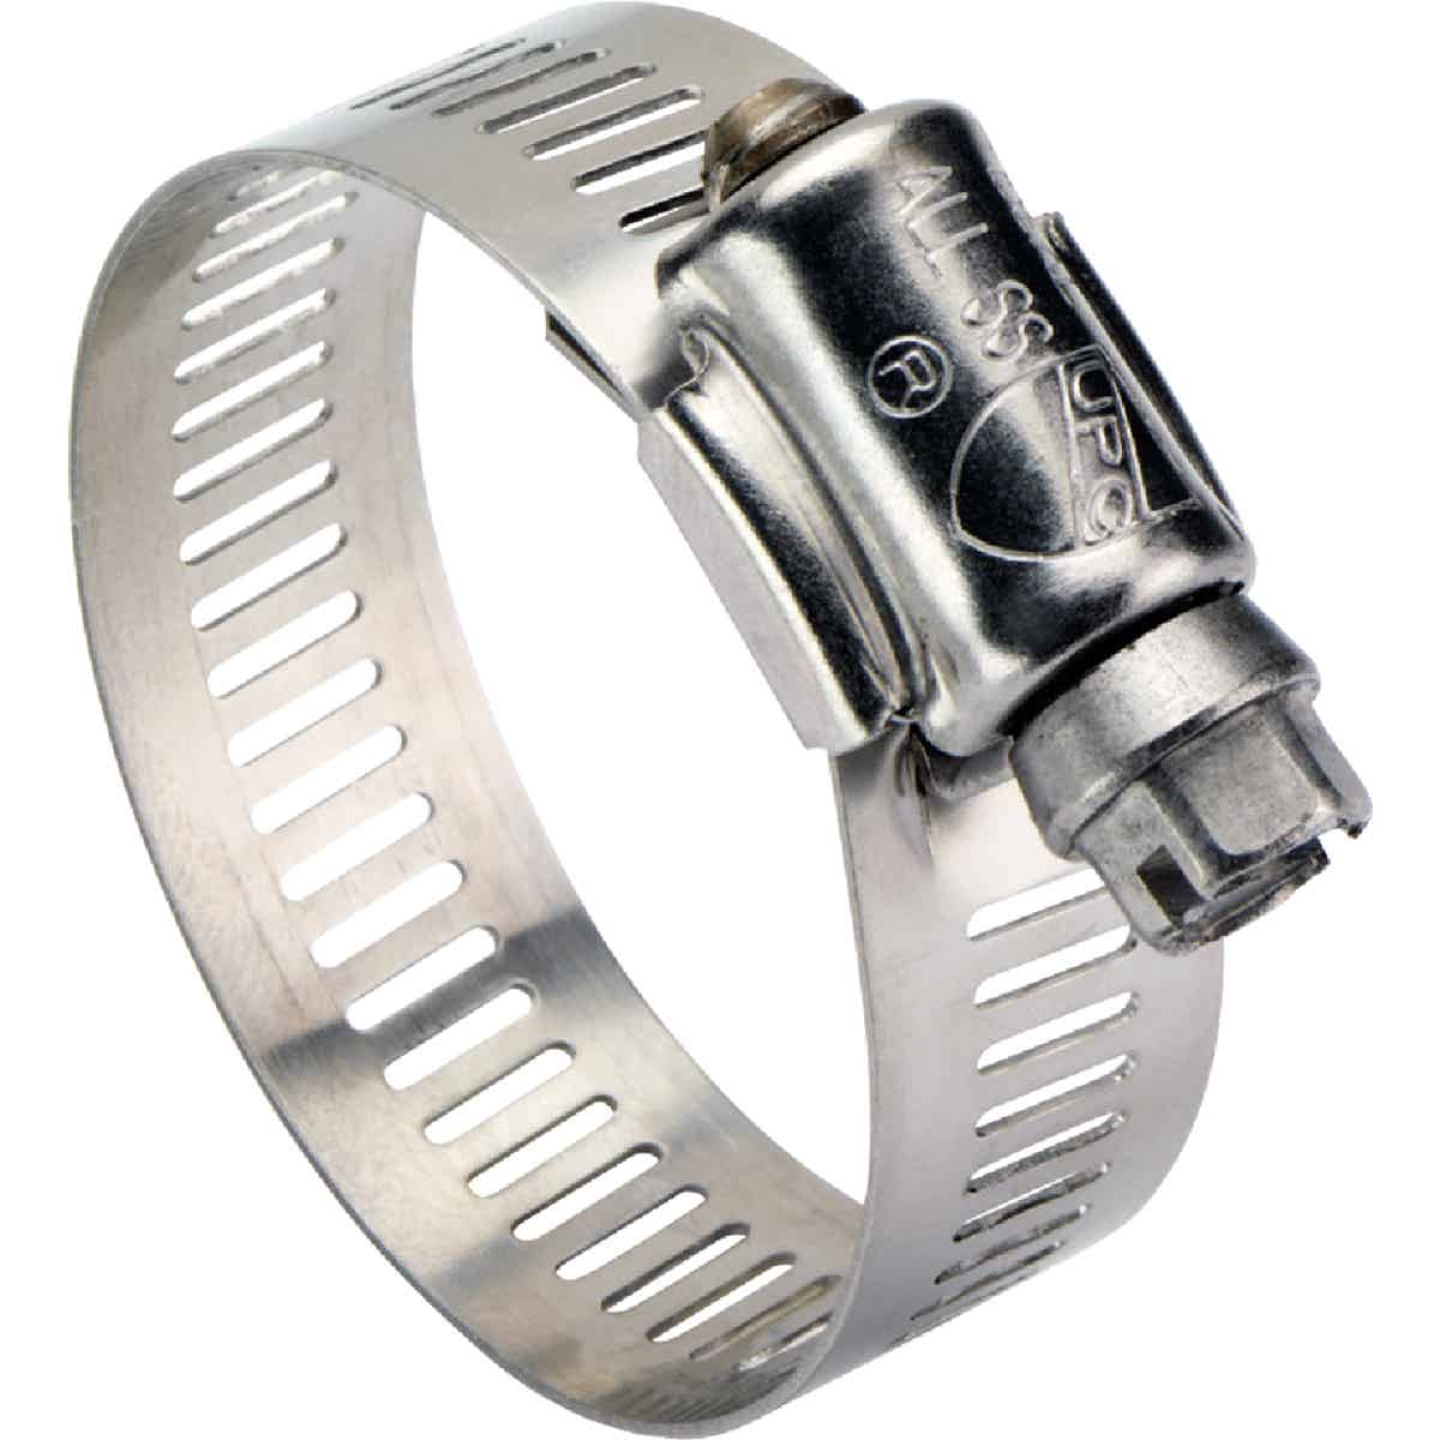 Ideal 1/2 In. - 7/8 In. All Stainless Steel Marine-Grade Hose Clamp Image 1